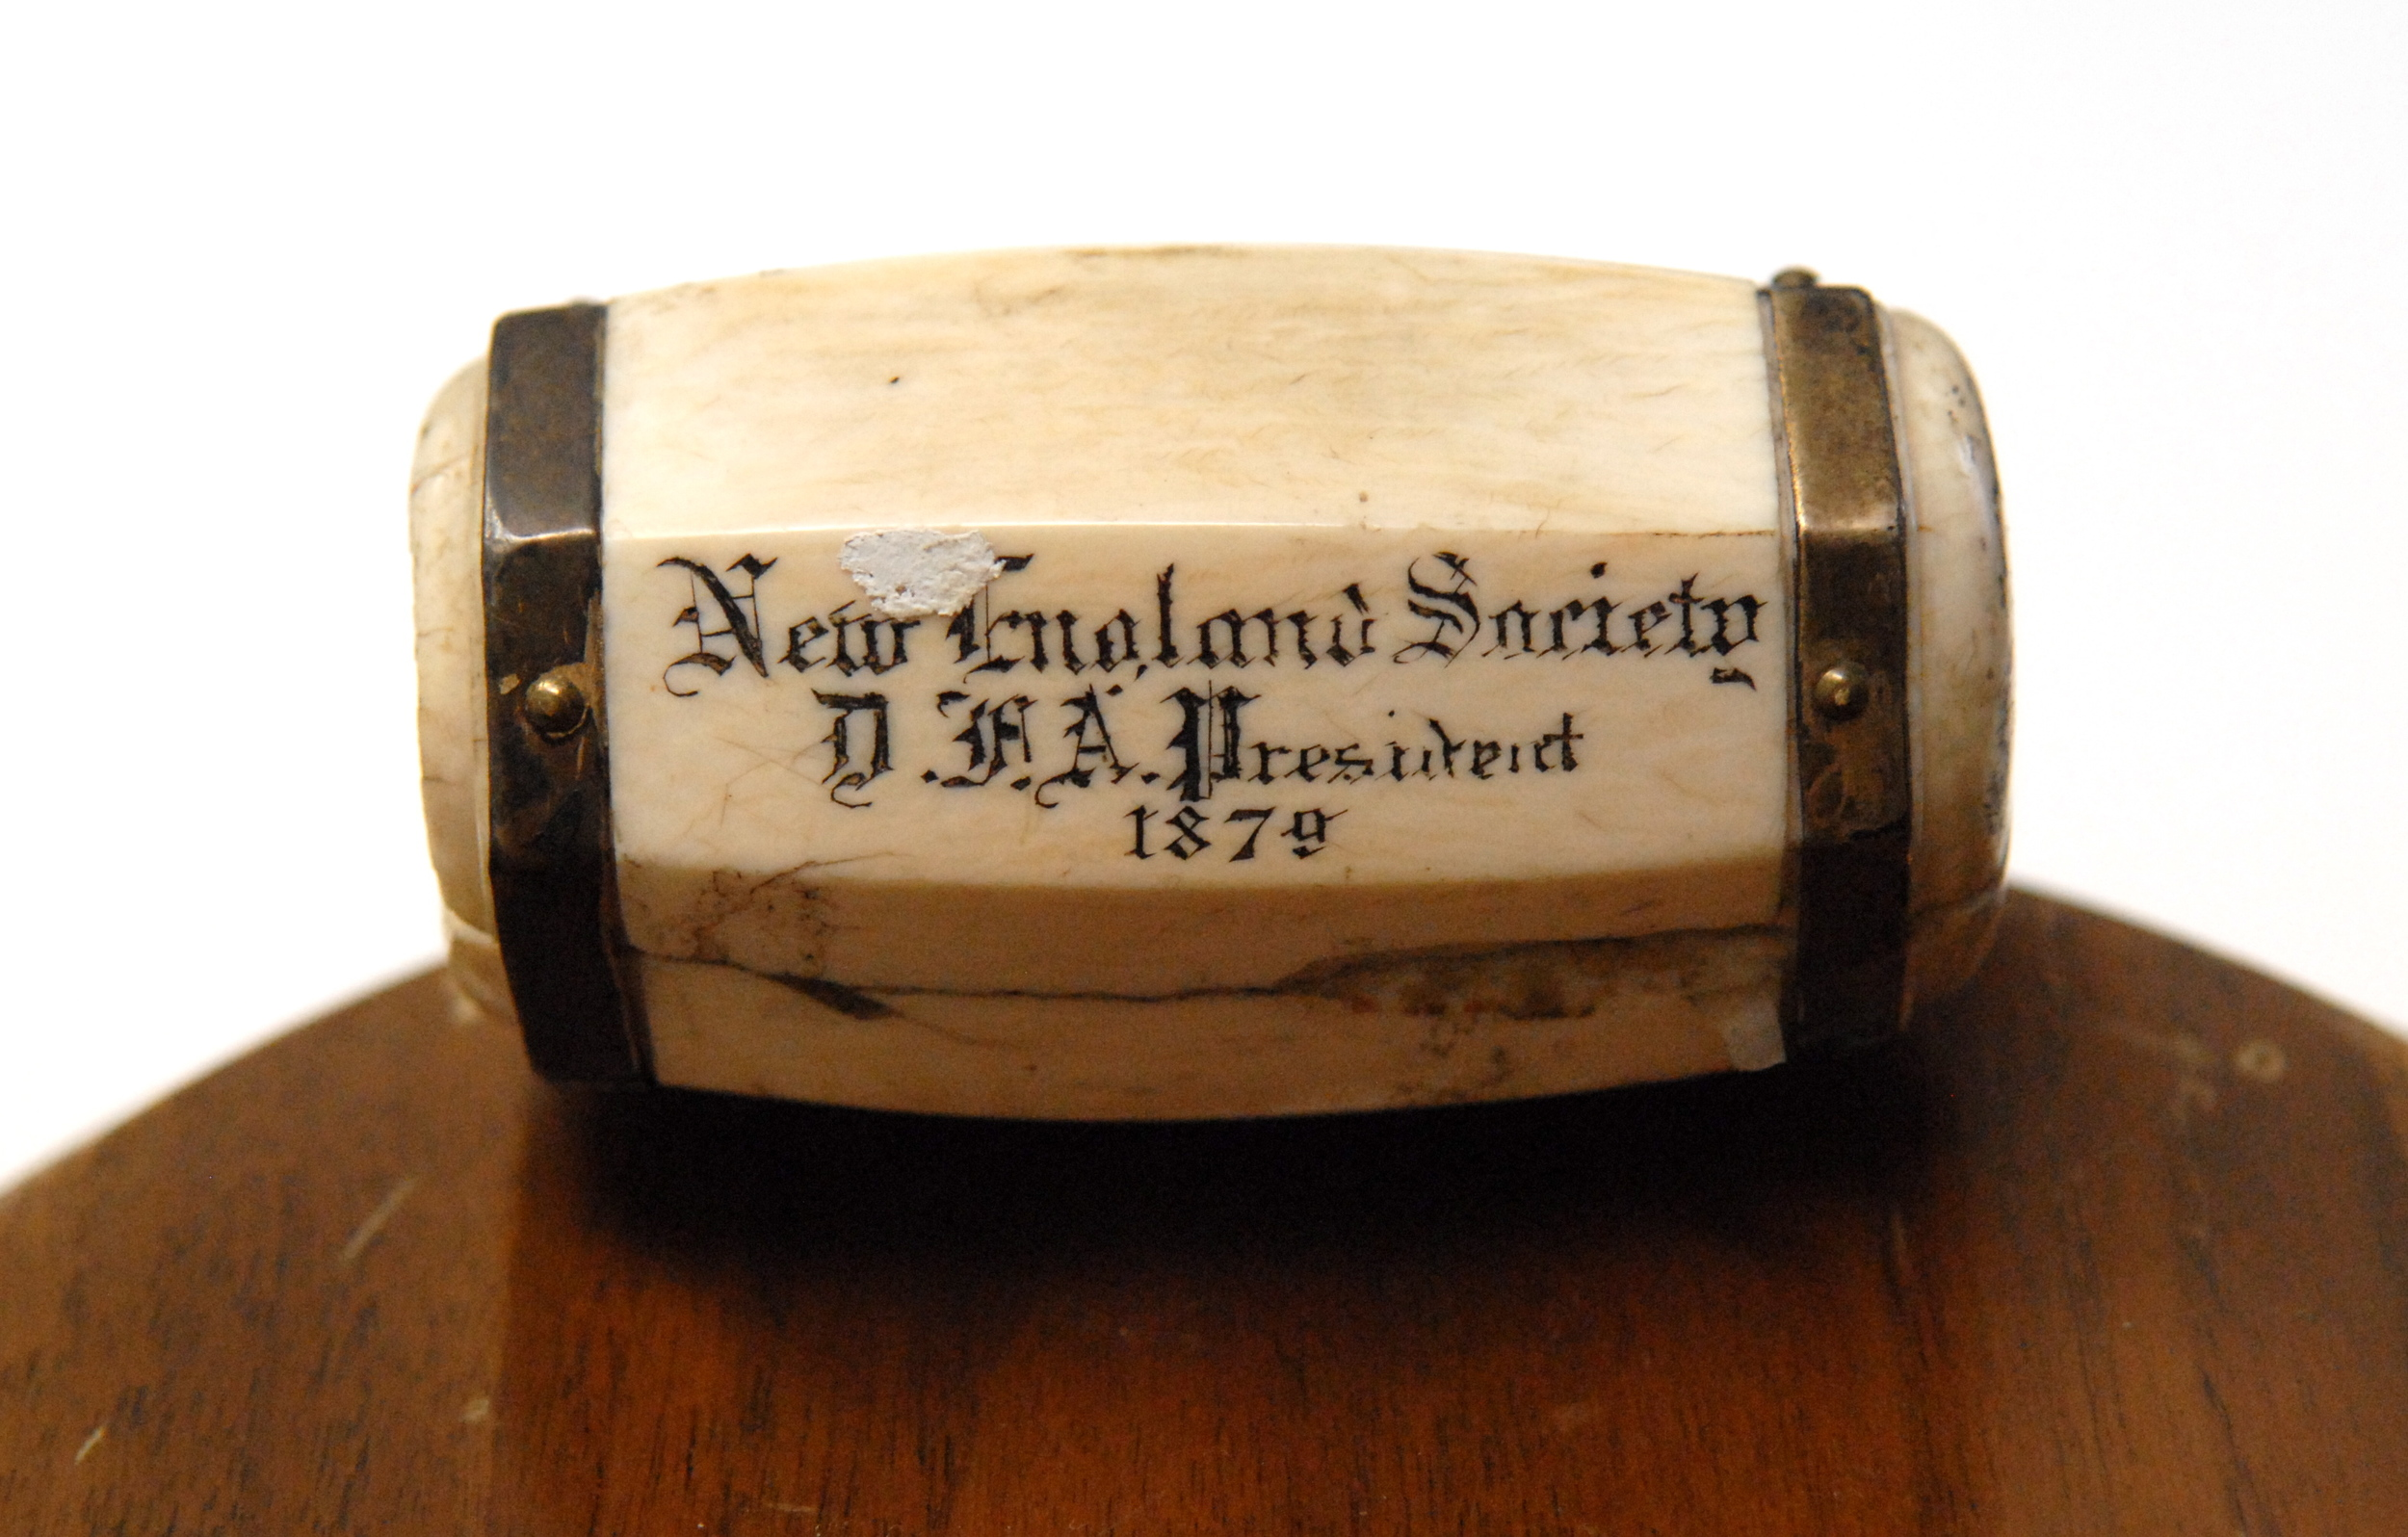 "NES President's ivory-topped gavel, inscribed ""New England Society, D.F.A, President, 1879"". D.F.A. were the initials of the 19th President, Daniel F. Appleton, who served from 1877-1879."